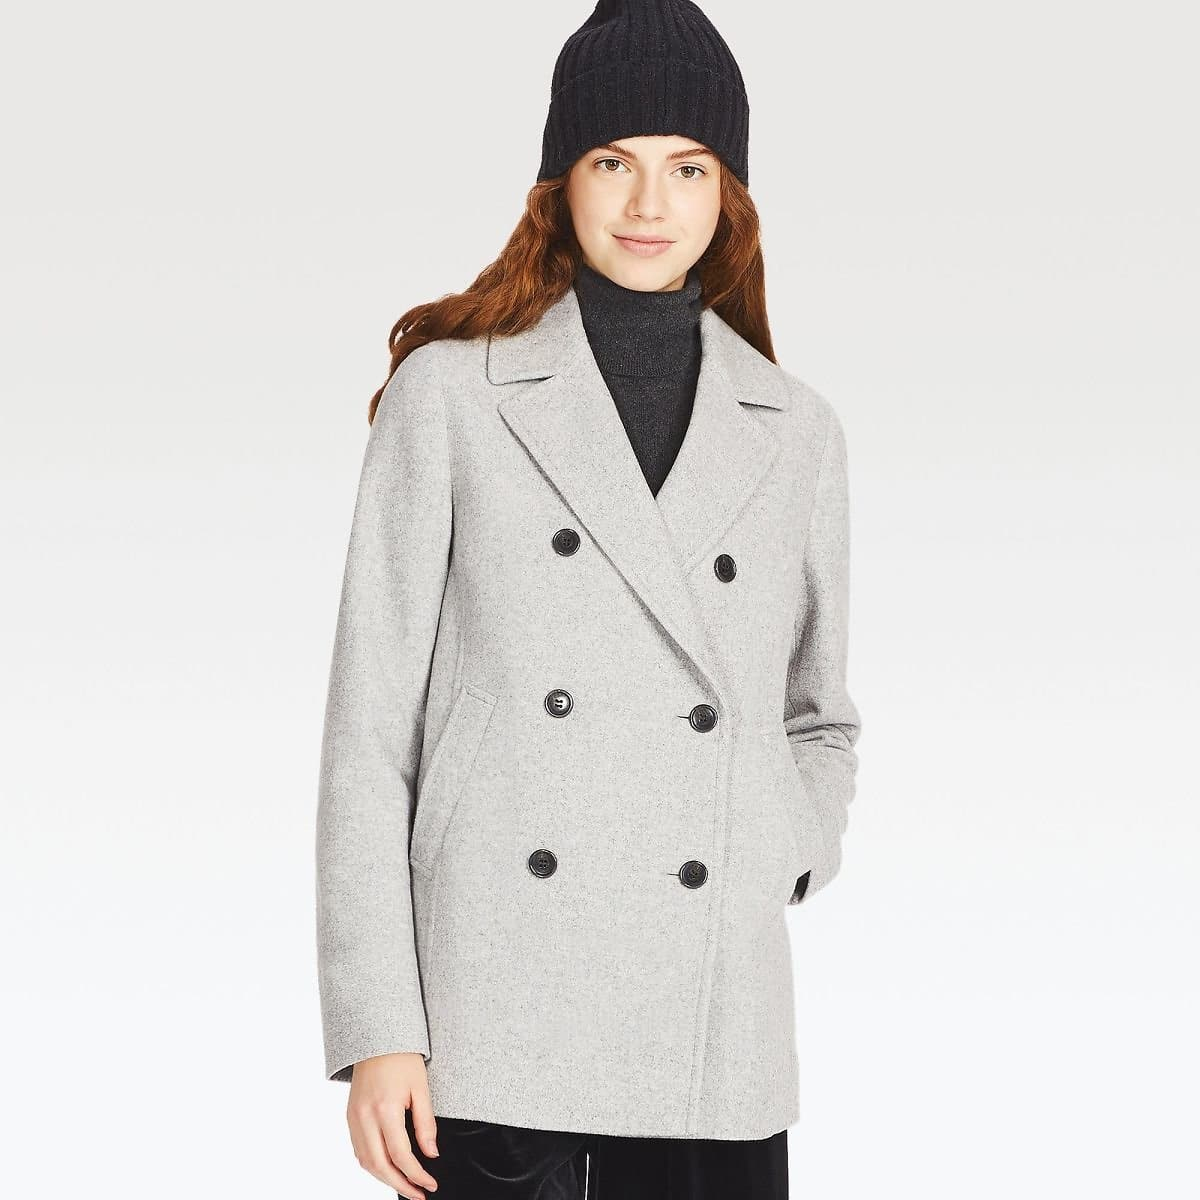 Women Wool-Blend Peacoat $59.90 $59.89